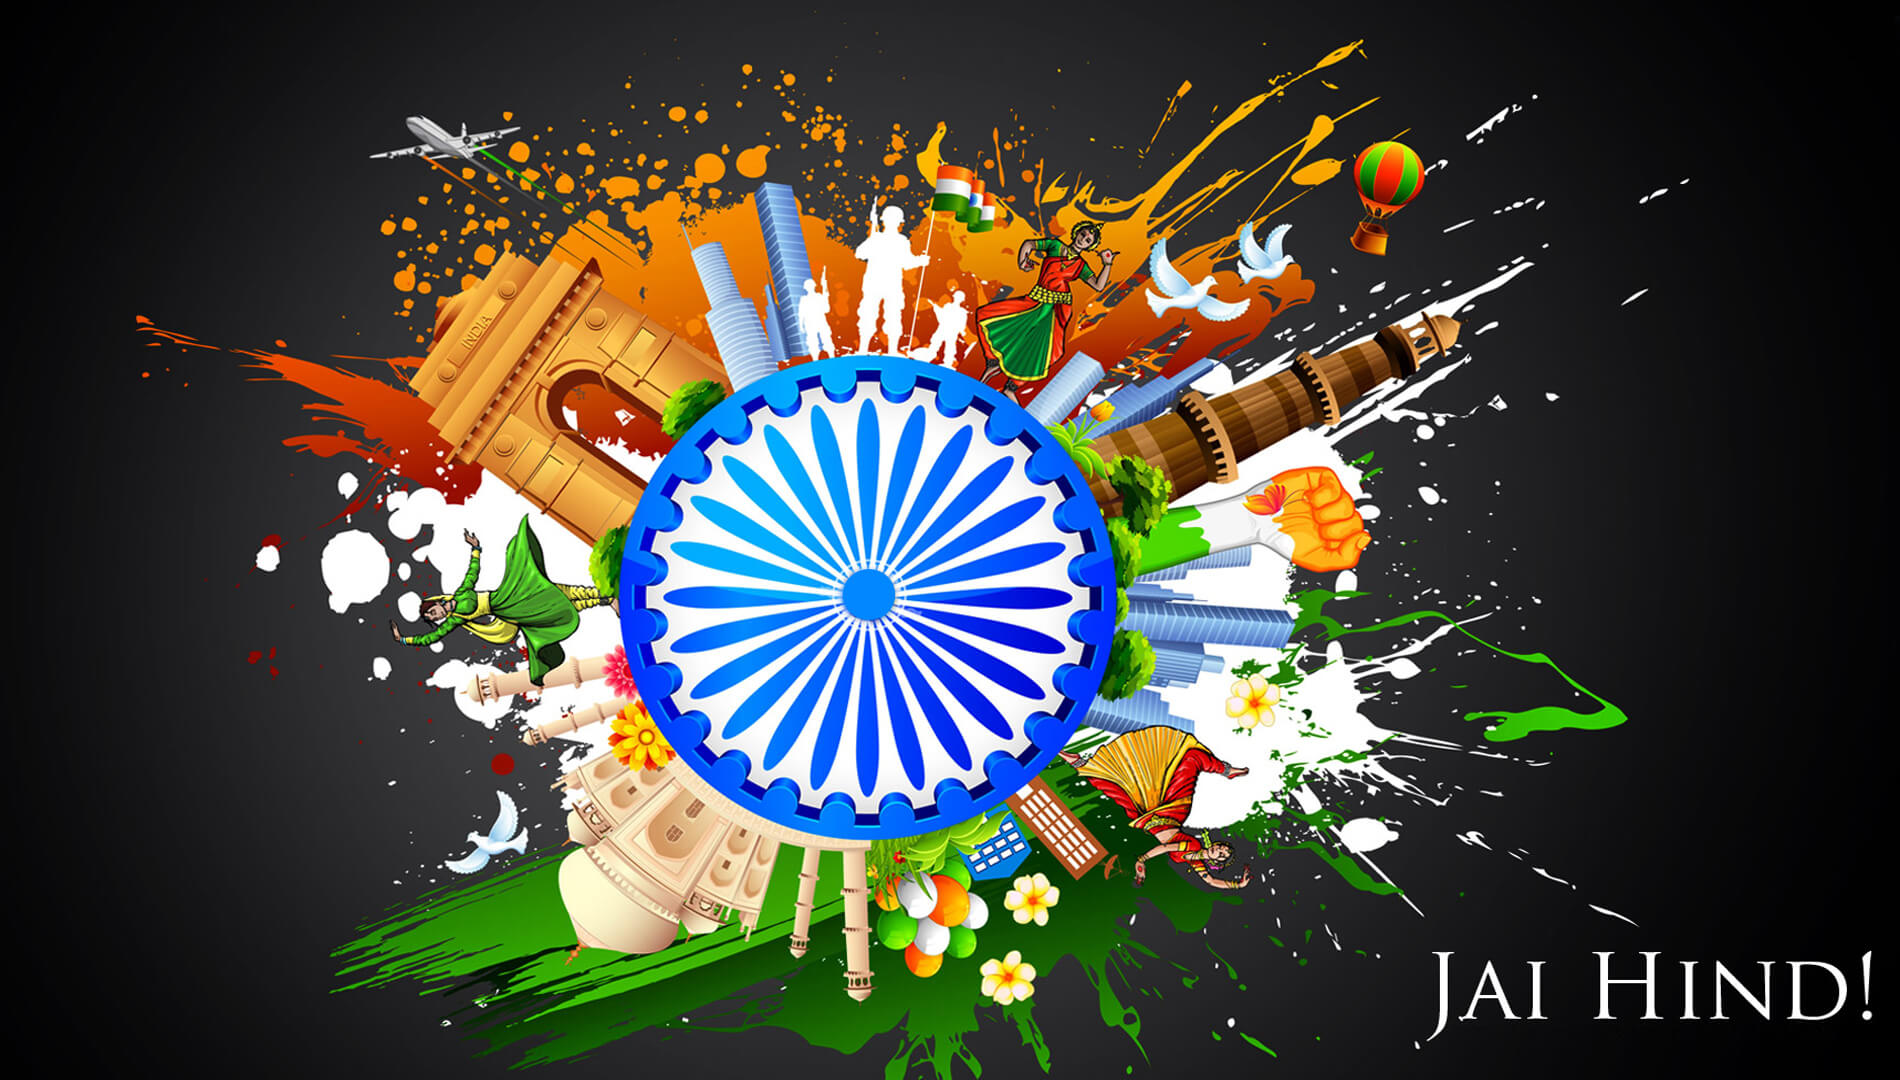 india independence day 15th august jai hind hd wallpaper